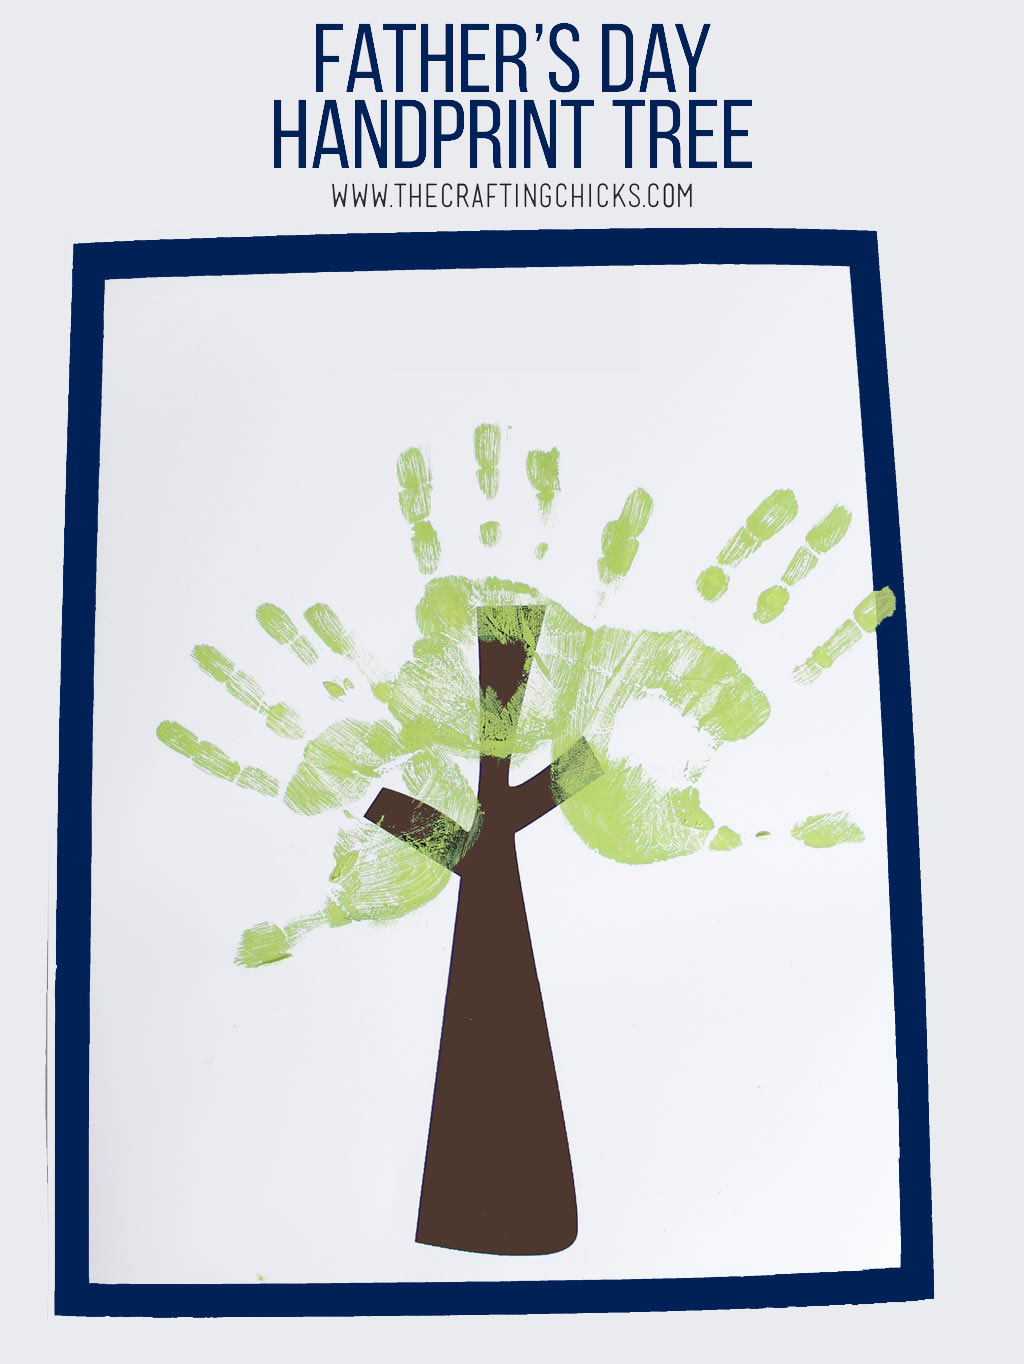 photo regarding Printable Handprint titled Fathers Working day Handprint Tree - The Creating Chicks